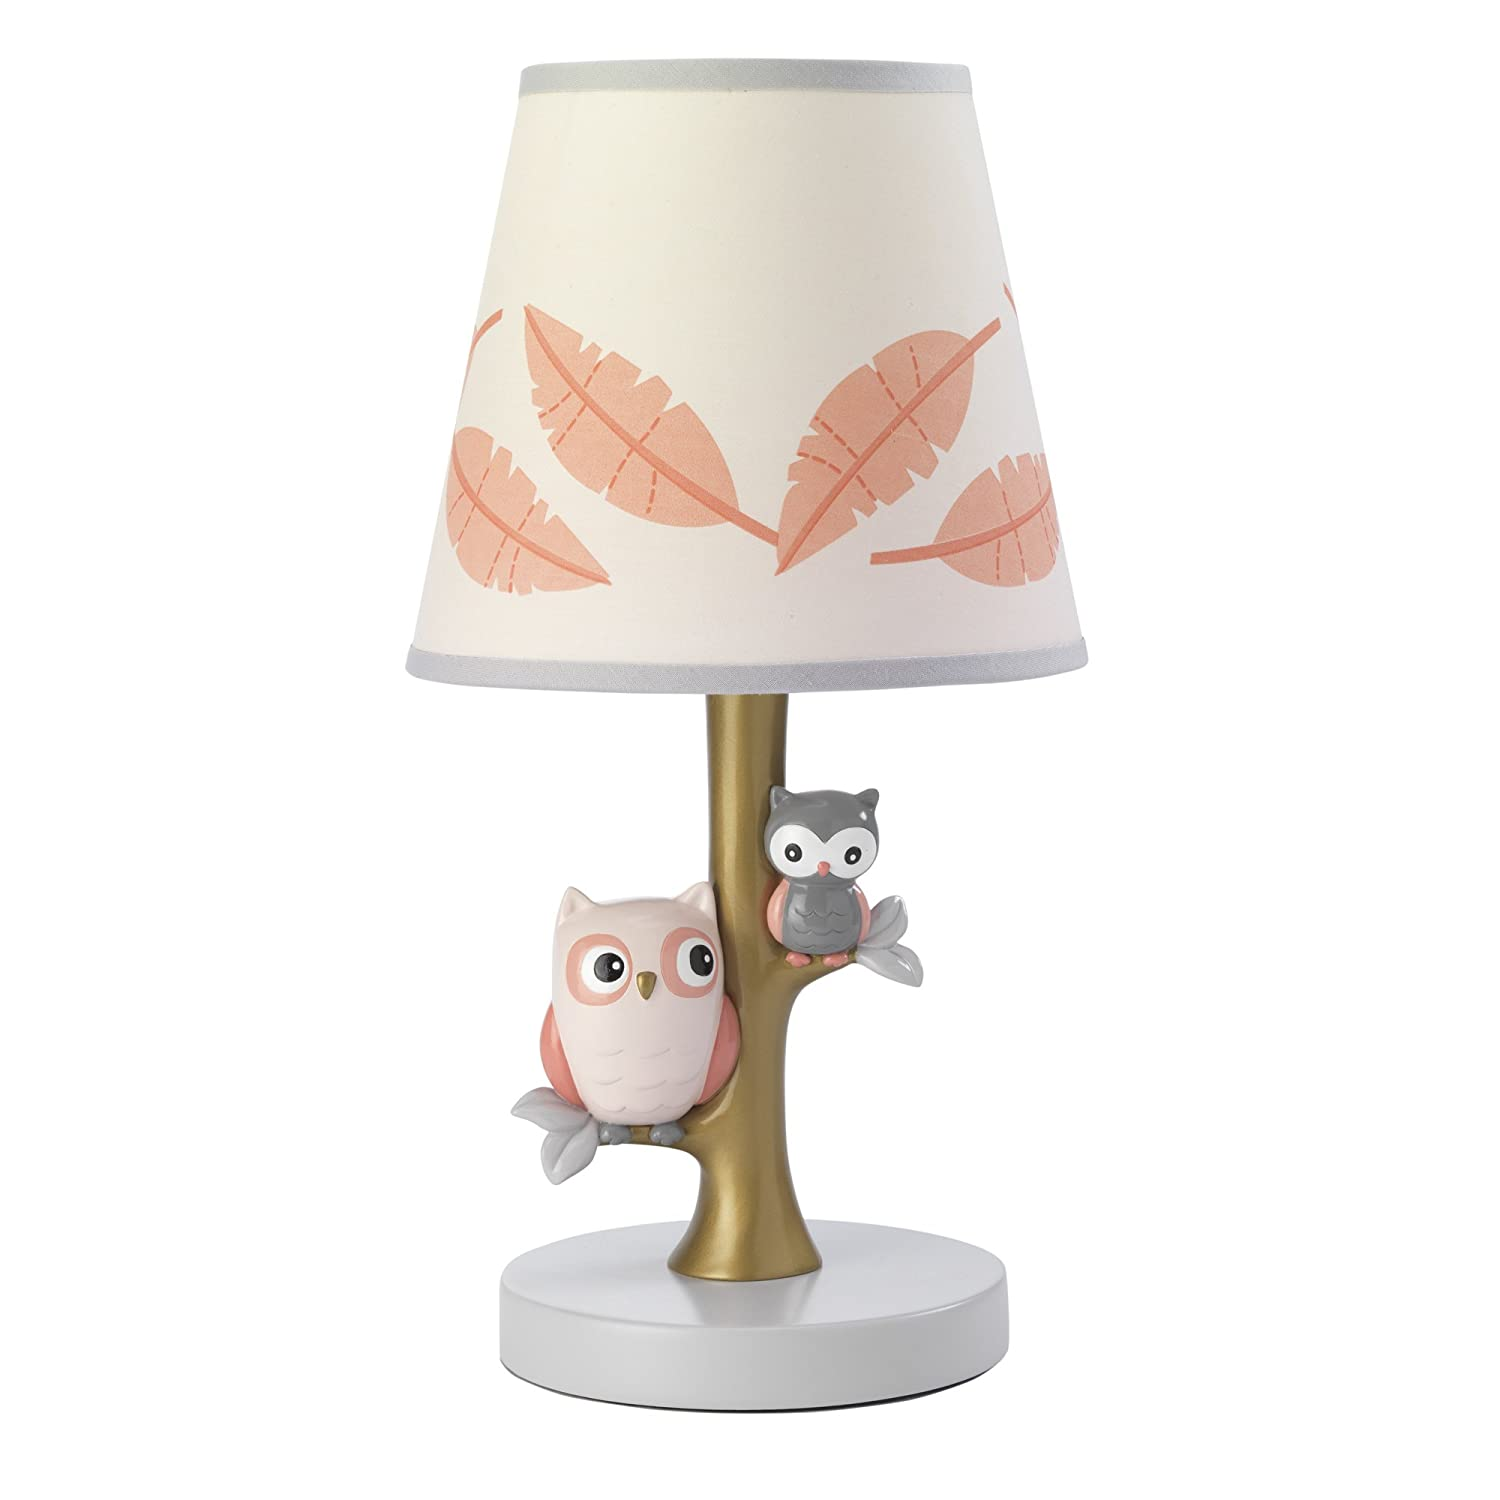 Lambs & Ivy Family Tree Coral/Gray/Gold Owl Lamp with Shade & Bulb 673024B